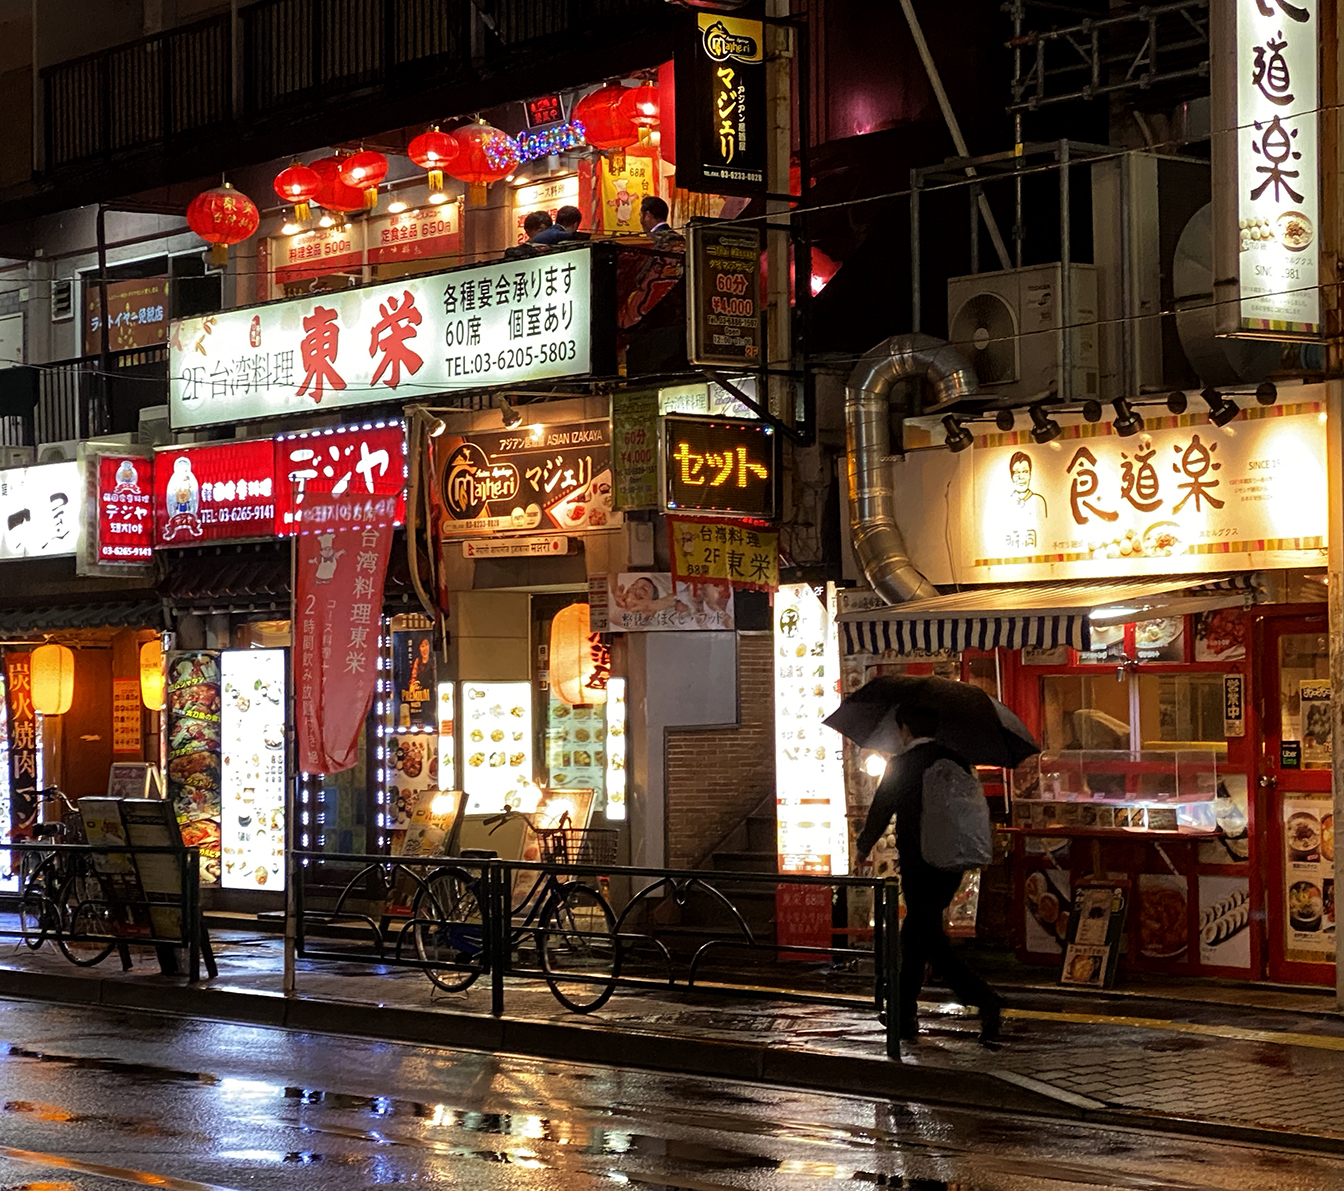 Shinjuku Rainy Night